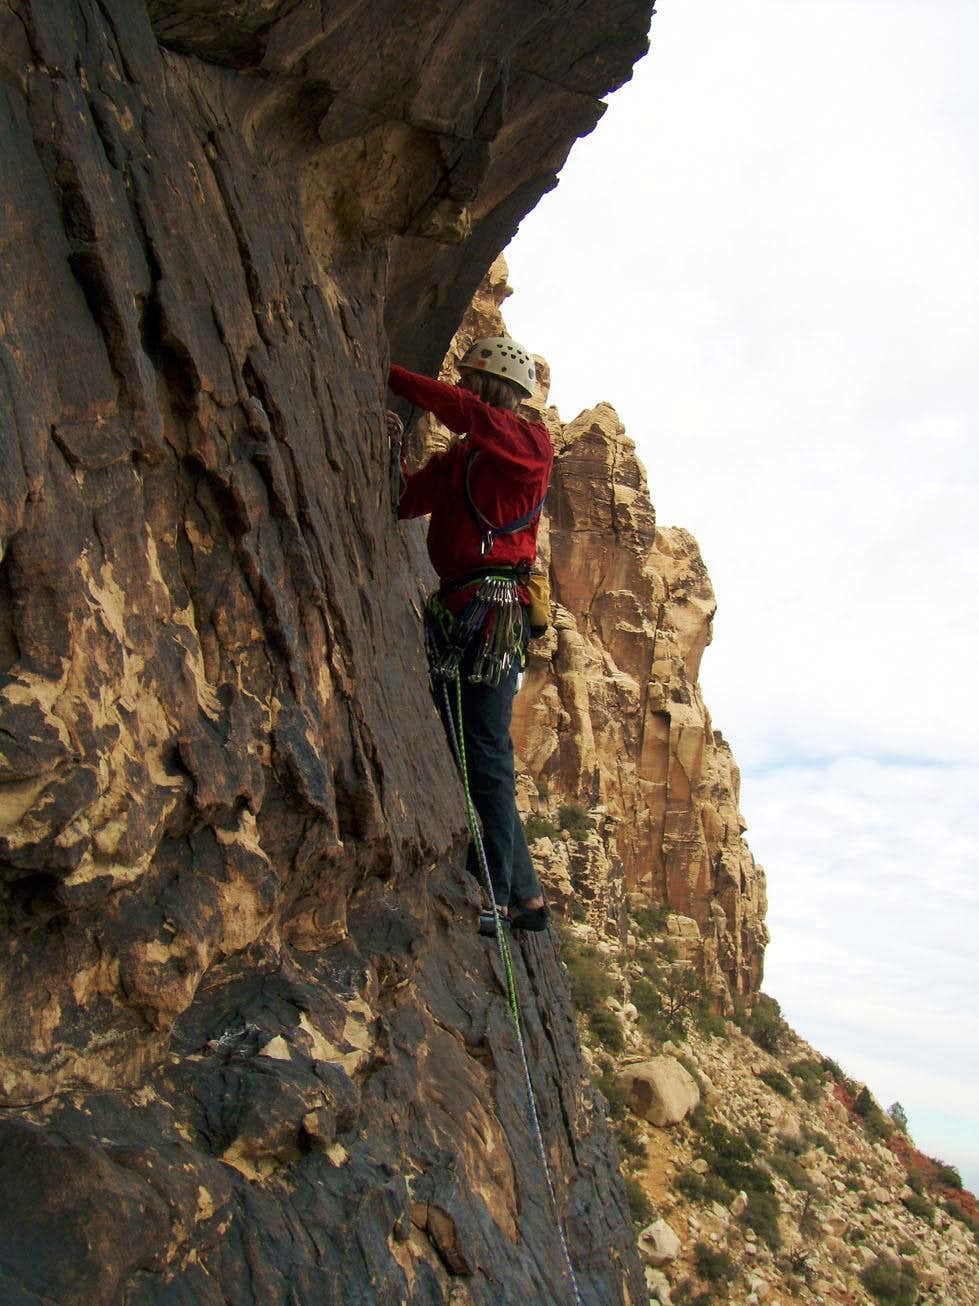 Solar Flare, 5.10c, 5 Pitches